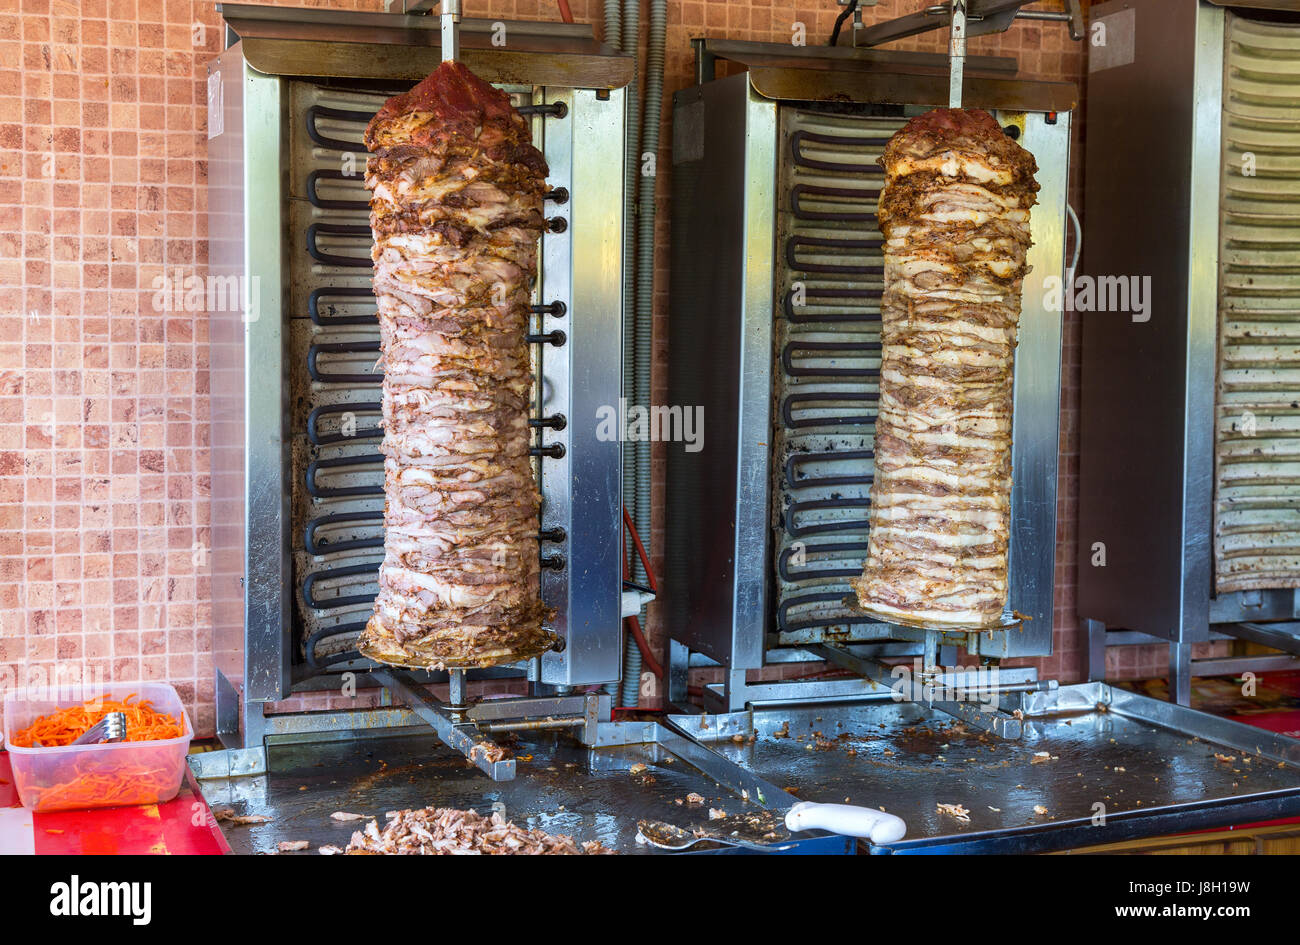 Traditional fast food Turkish doner kebab meat on a rotary grill - Stock Image